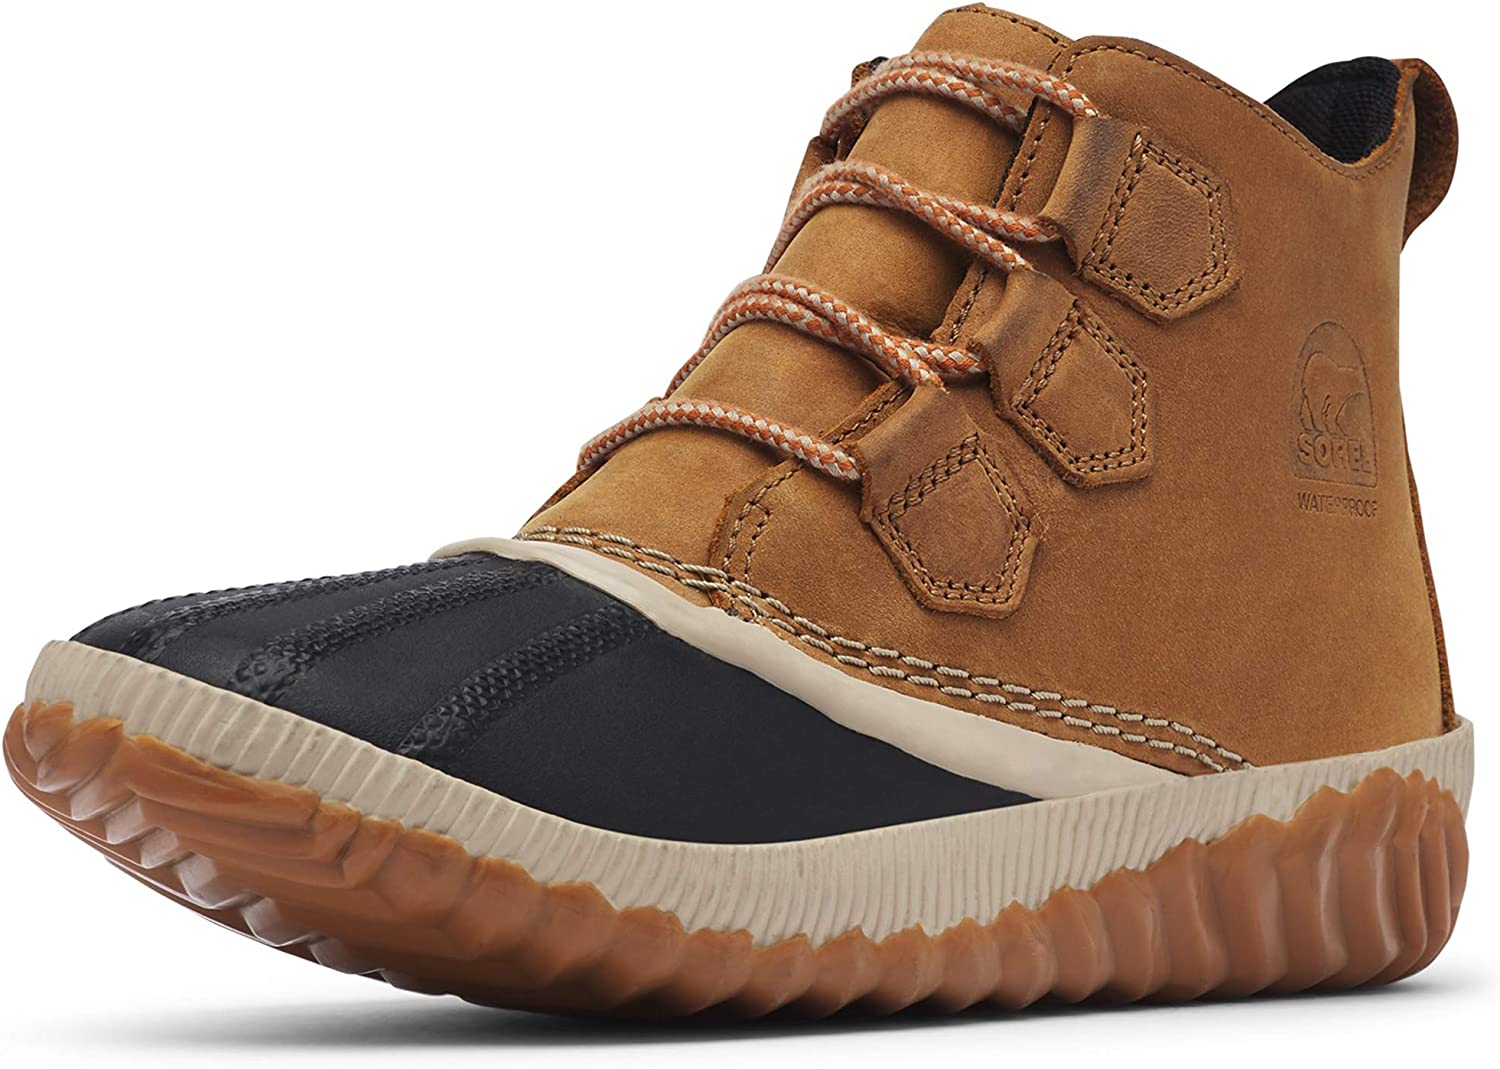   Sorel - Women's Out 'N About Plus, Waterproof Leather and Suede Duck Boot, Tonic Melon   Rain Footwear